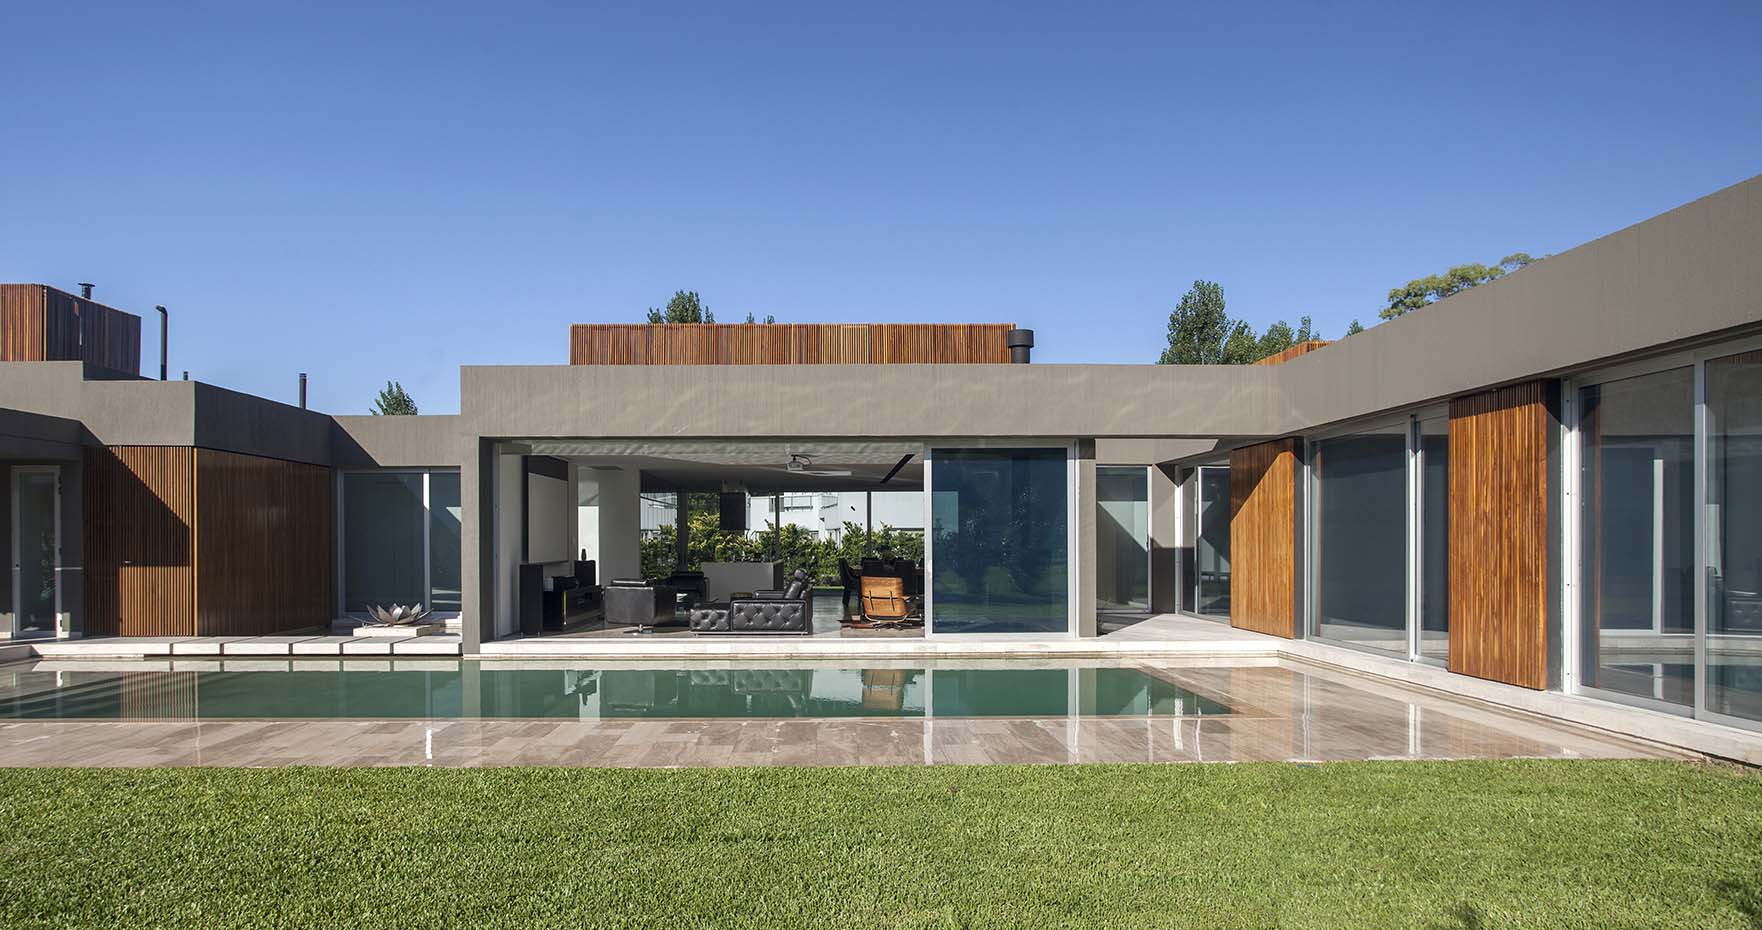 Pool-stepping-stones-and-garden-around-the-house-give-it-a-luxurious-modern-appeal-62802